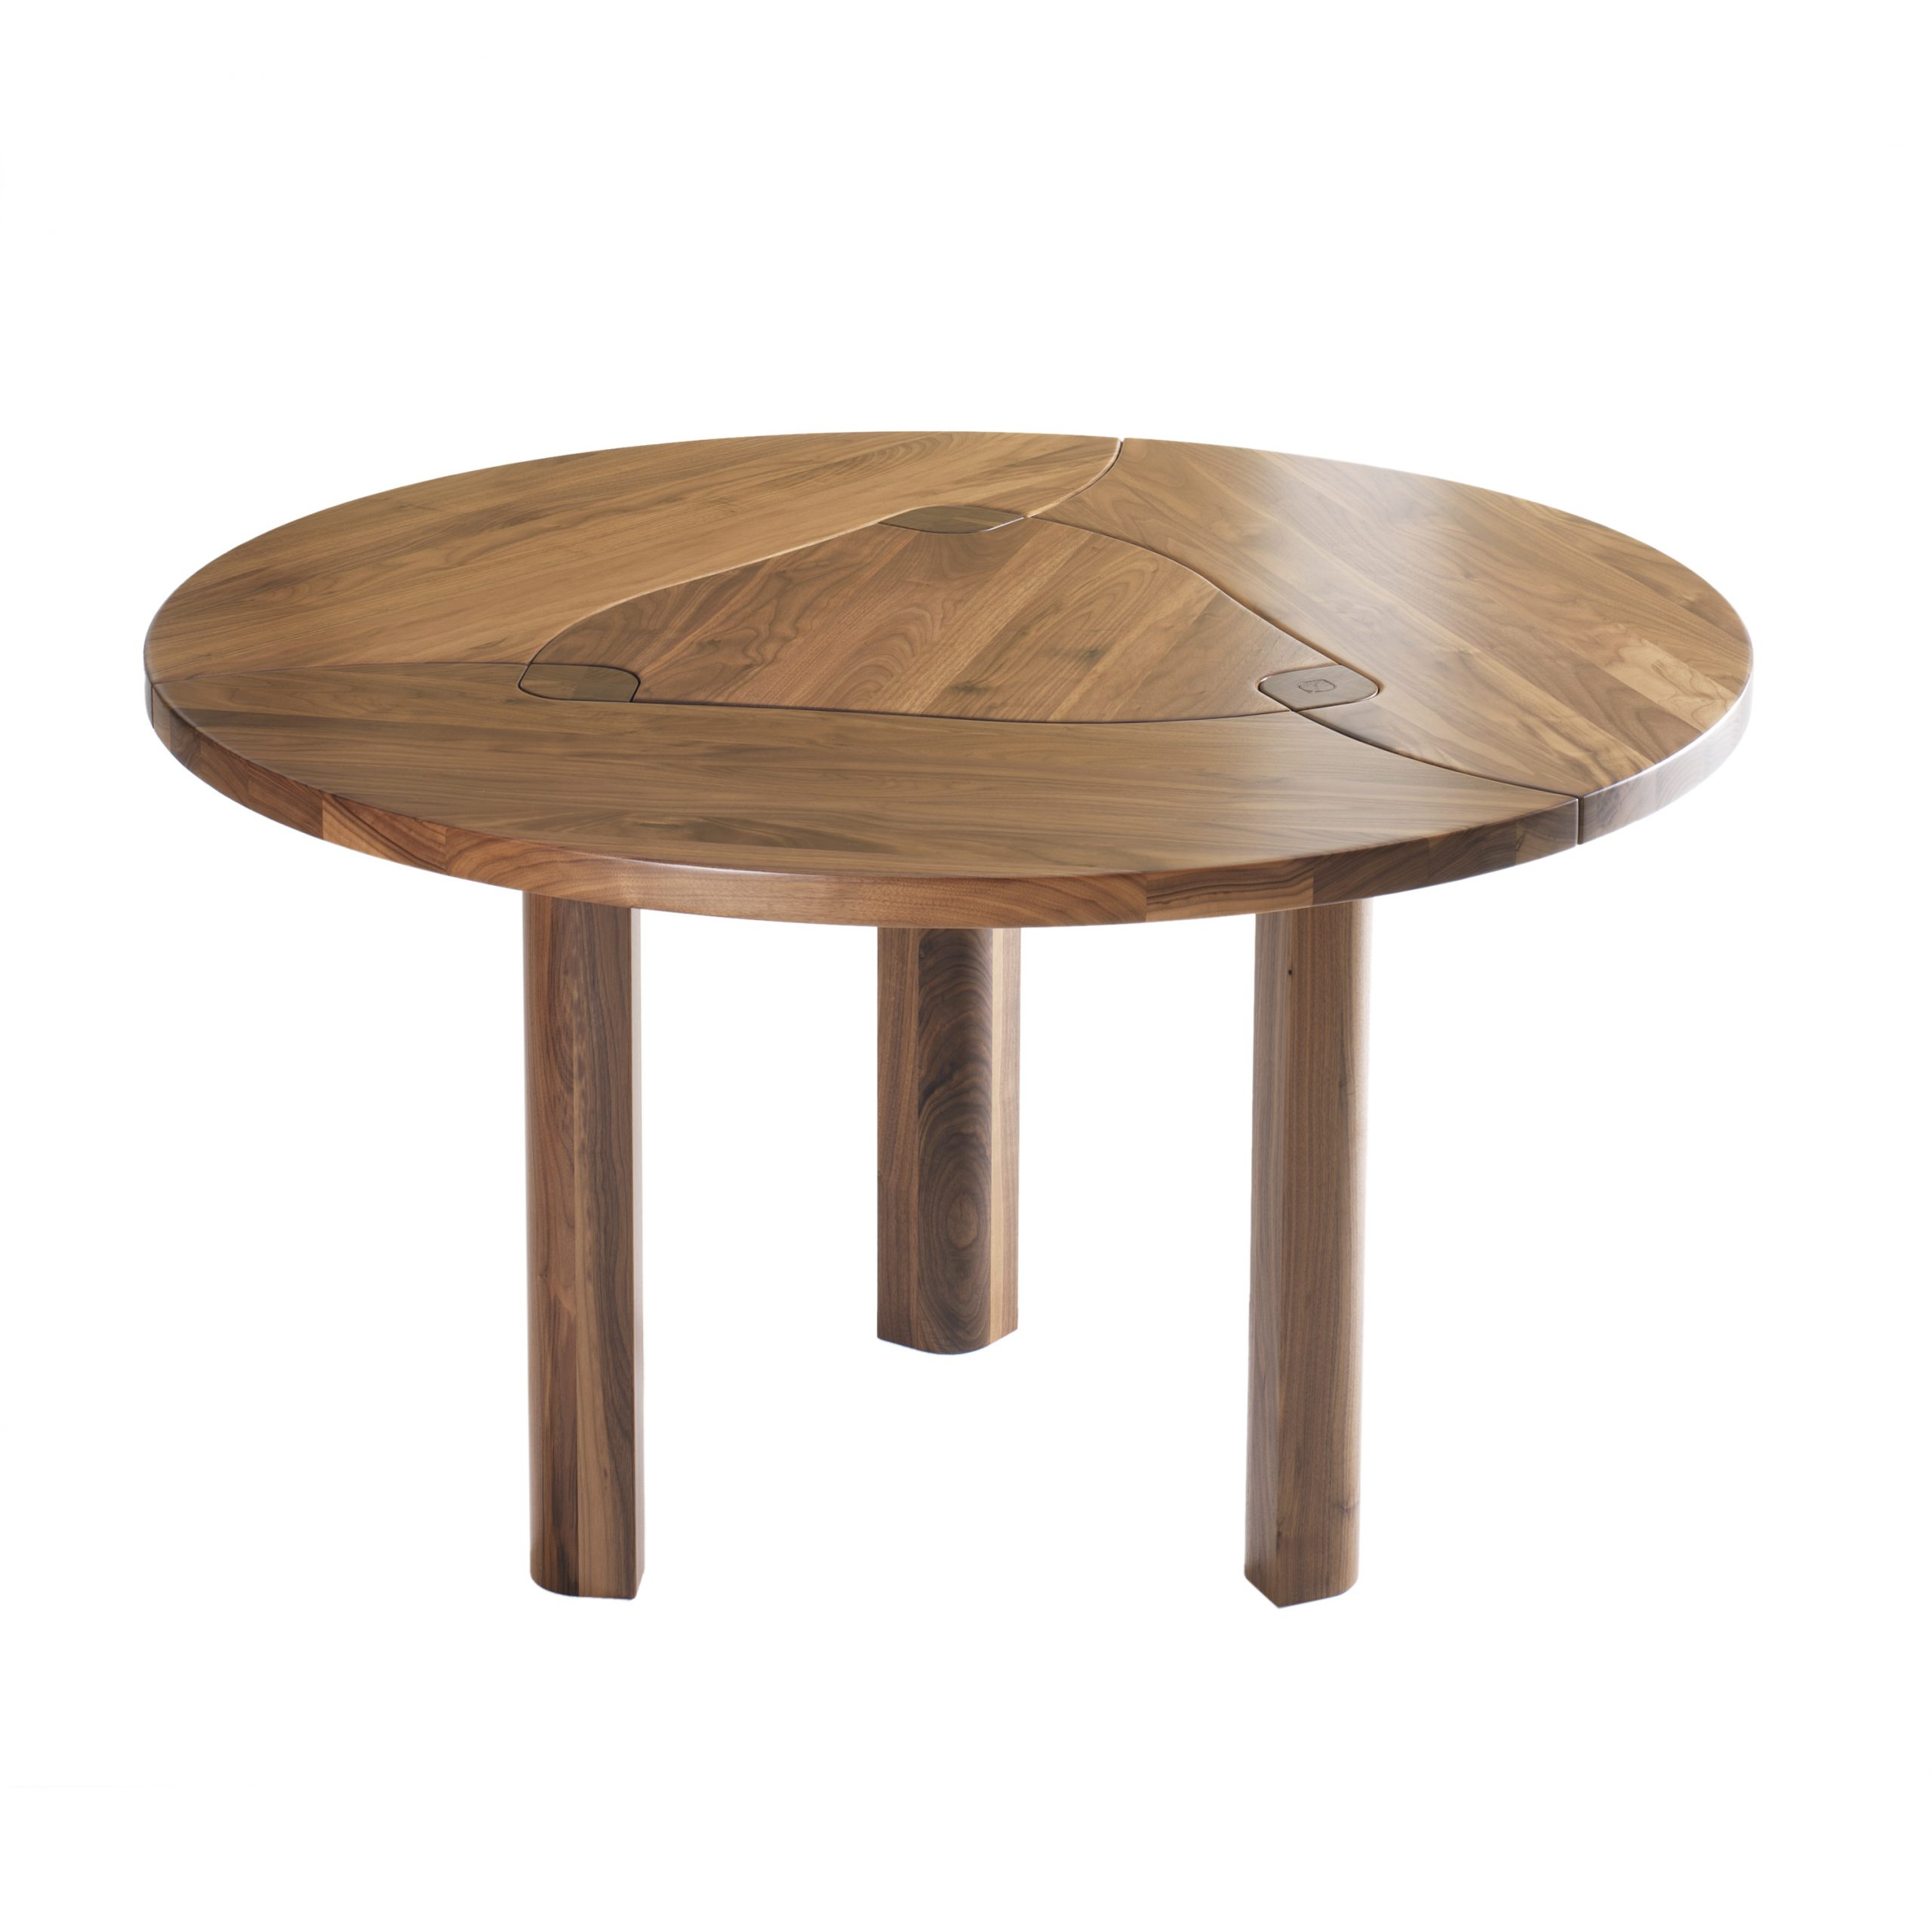 Glass Walnut Dining Table Choice Image – Round Dining Room In Popular Solid Wood Circular Dining Tables White (View 12 of 30)